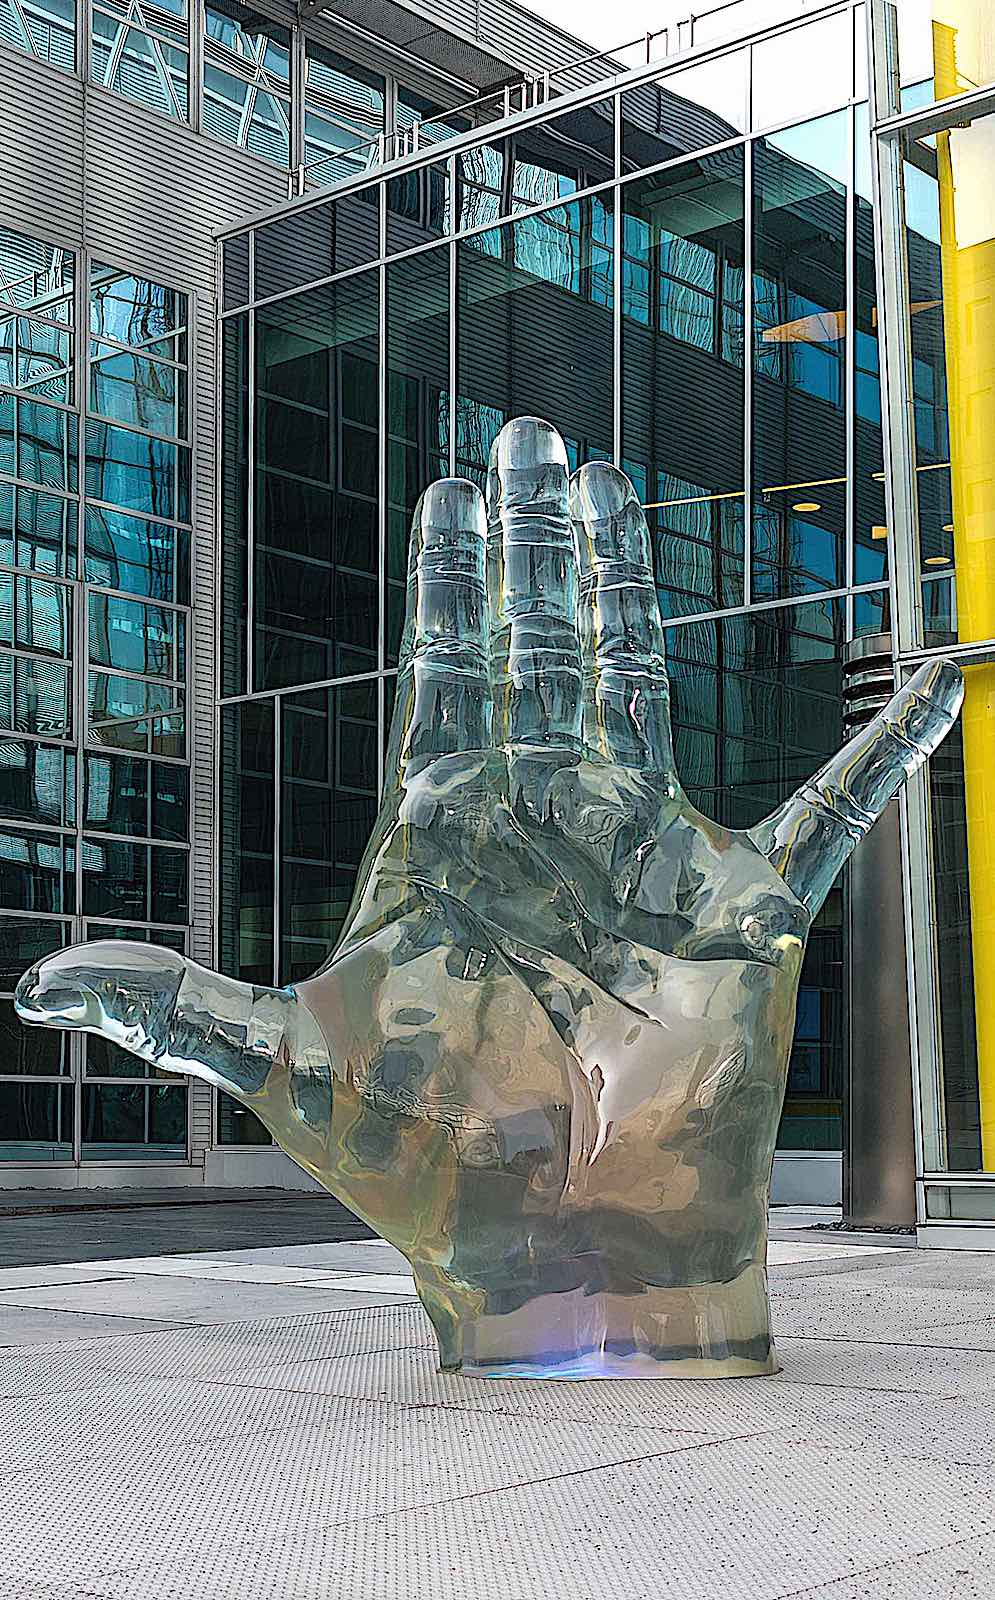 a glass sculpture of a giant hand,  Germany 2016